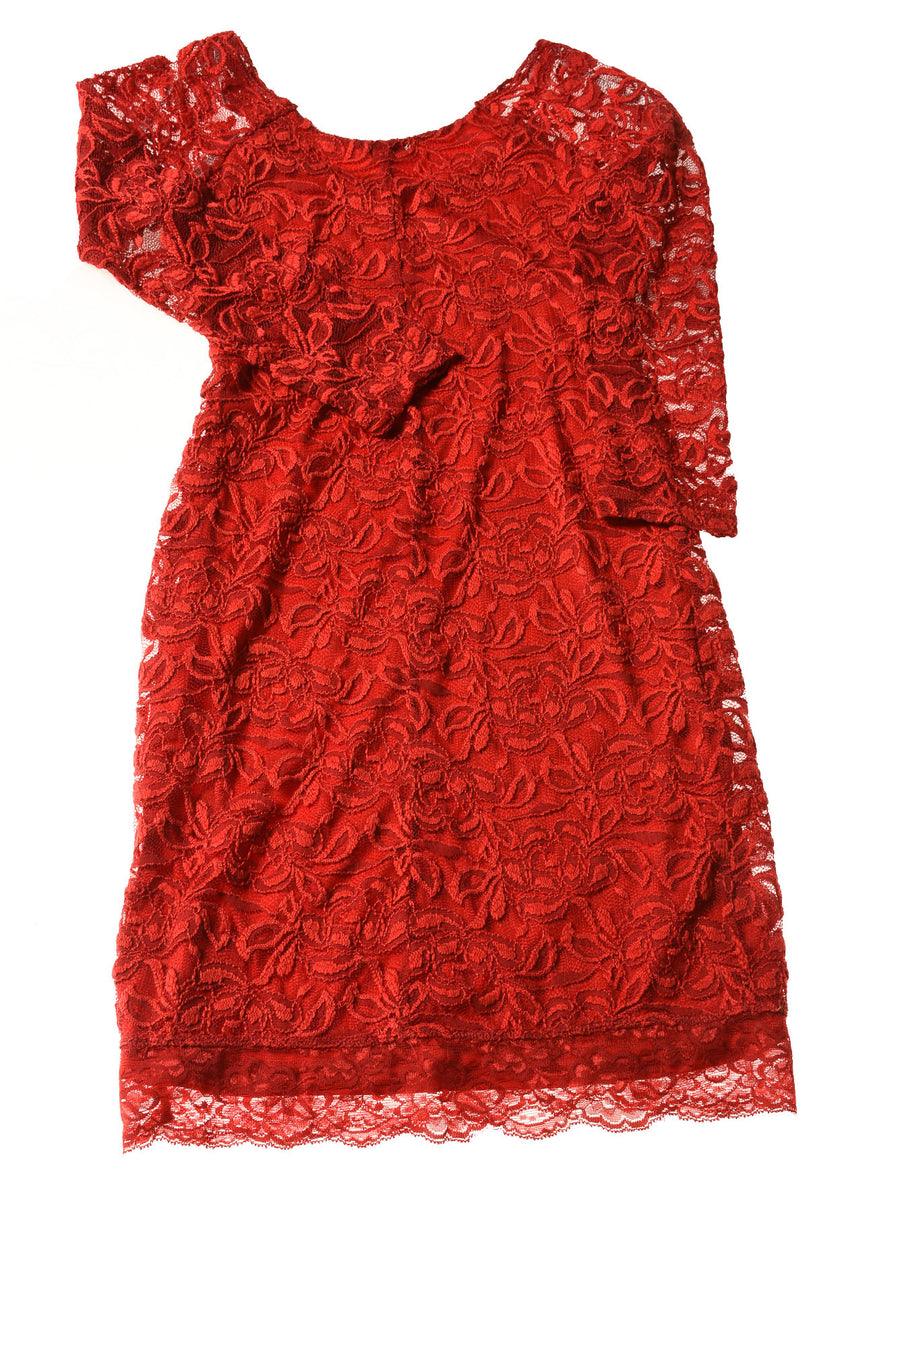 USED Guess Women's Dress Small Red